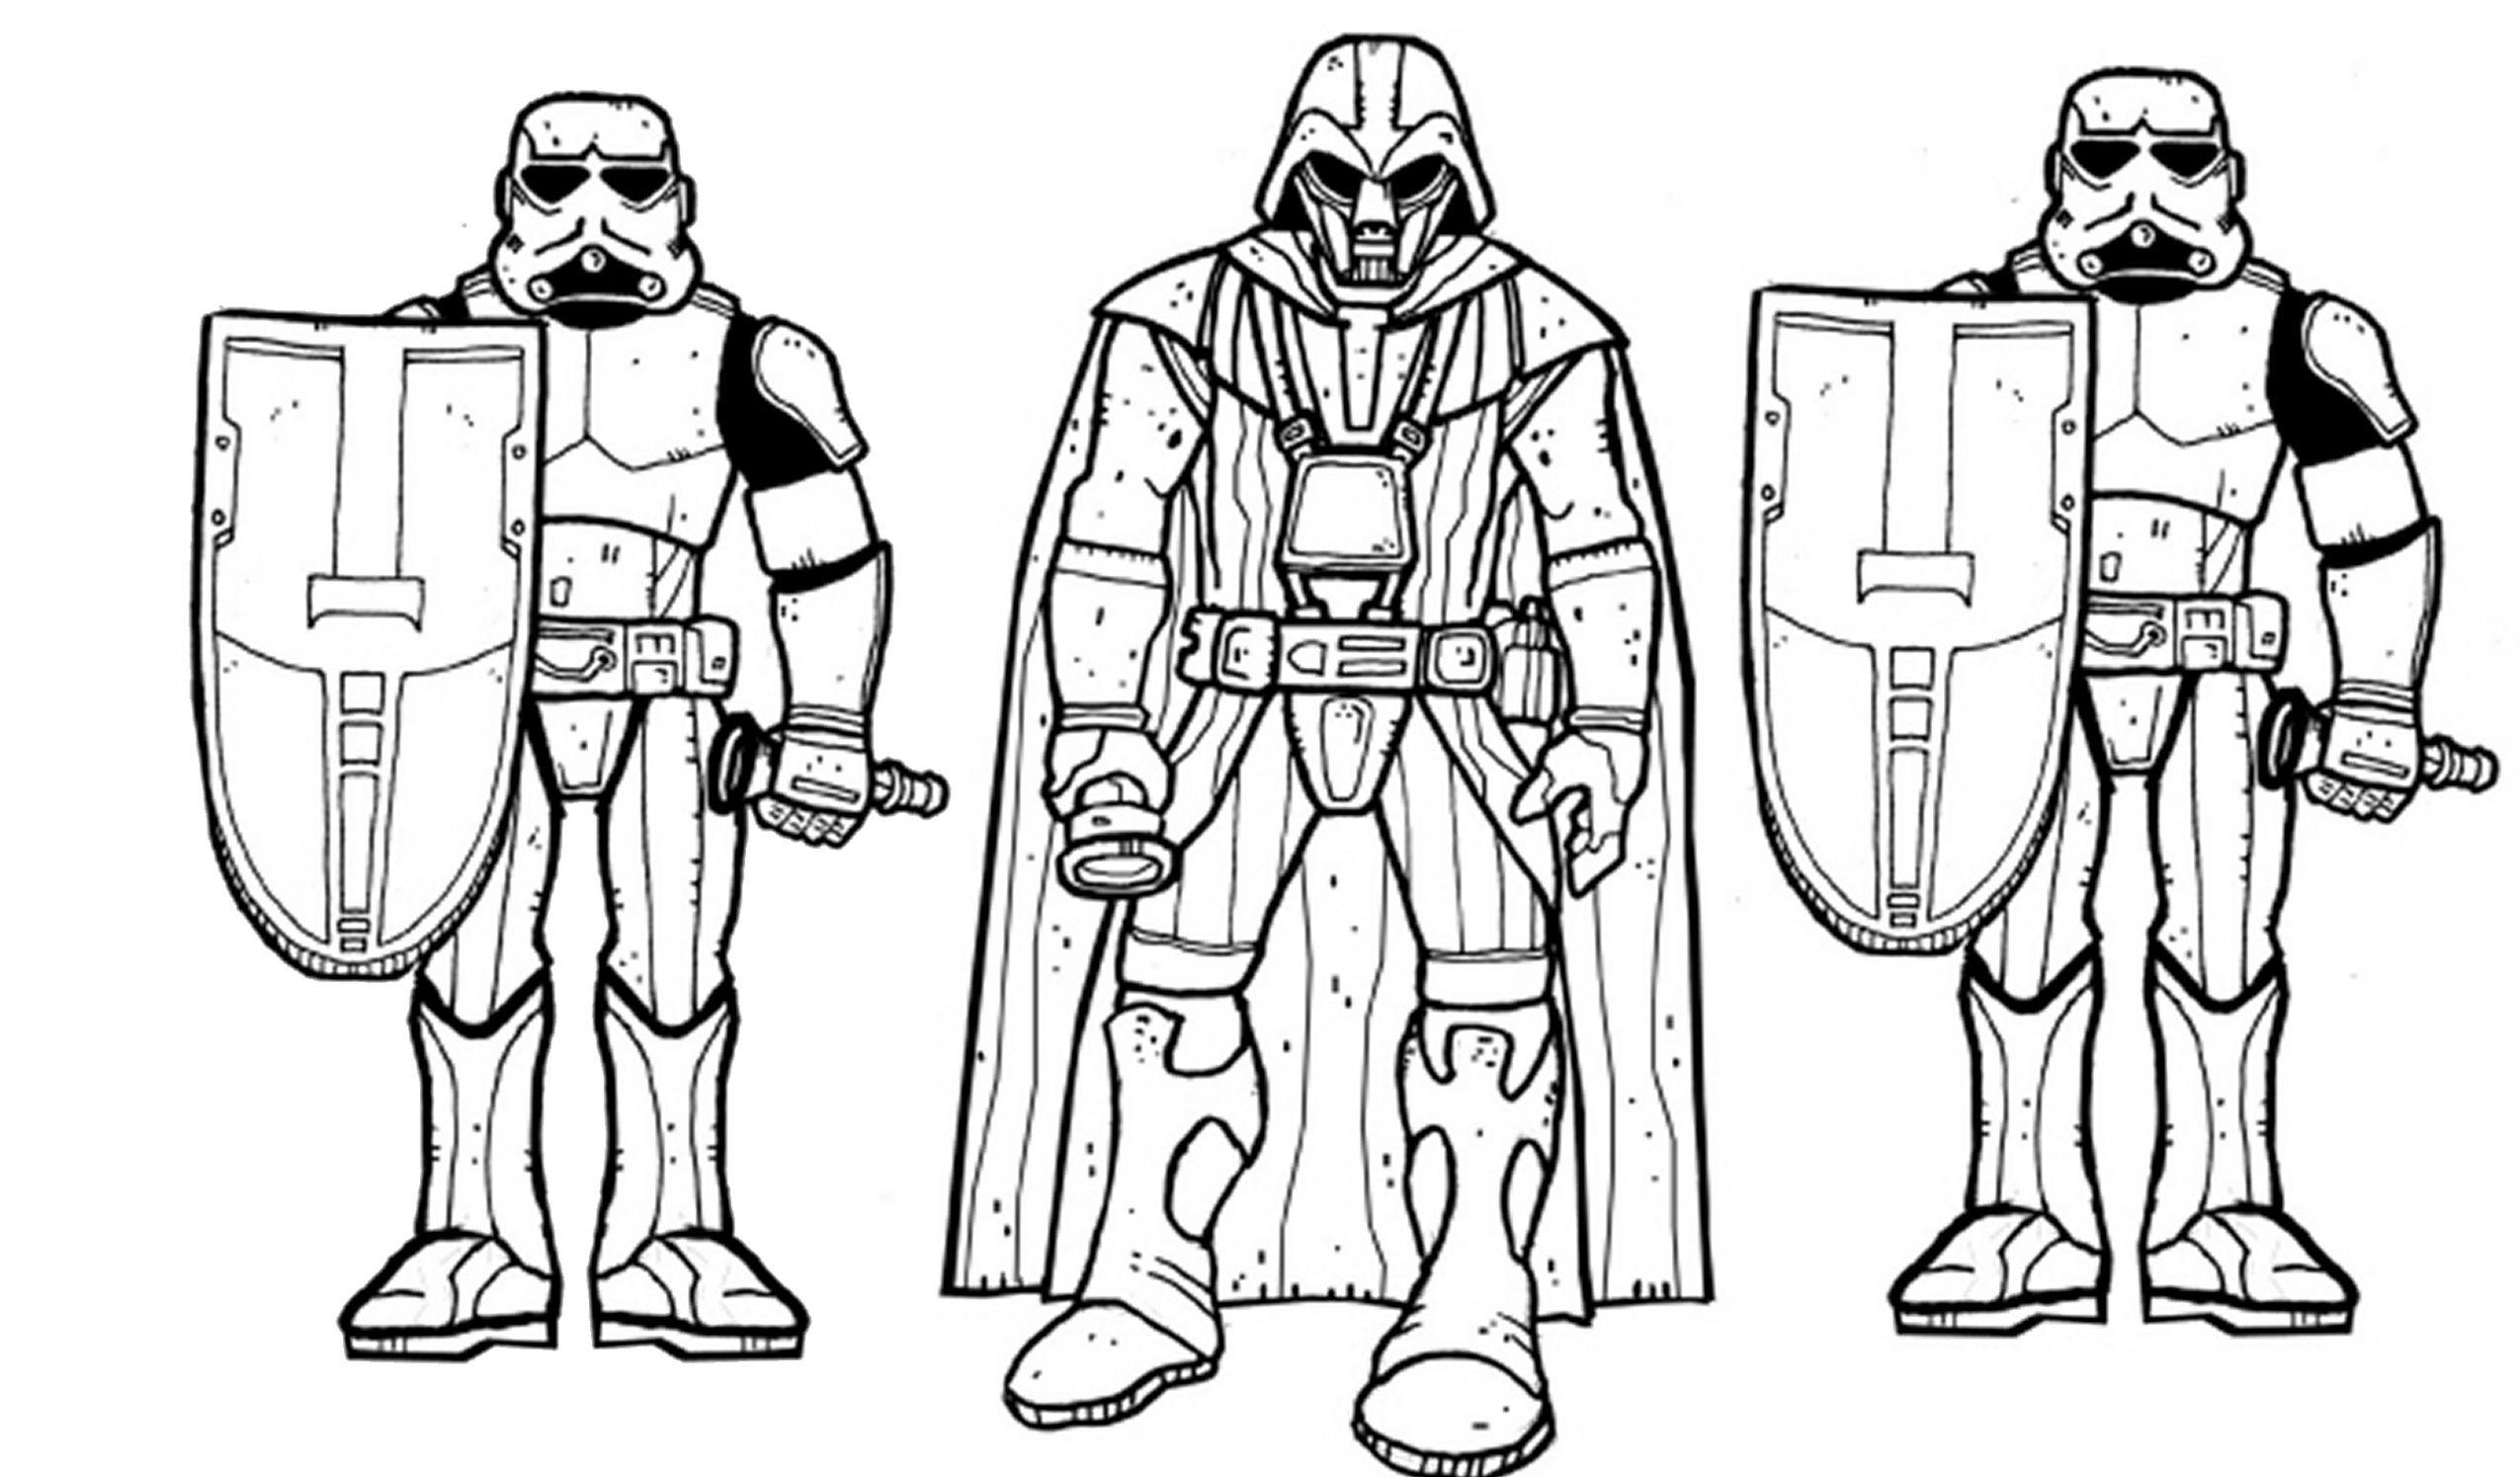 darth vader coloring pages darth vader coloring pages free printable darth vader coloring vader darth pages